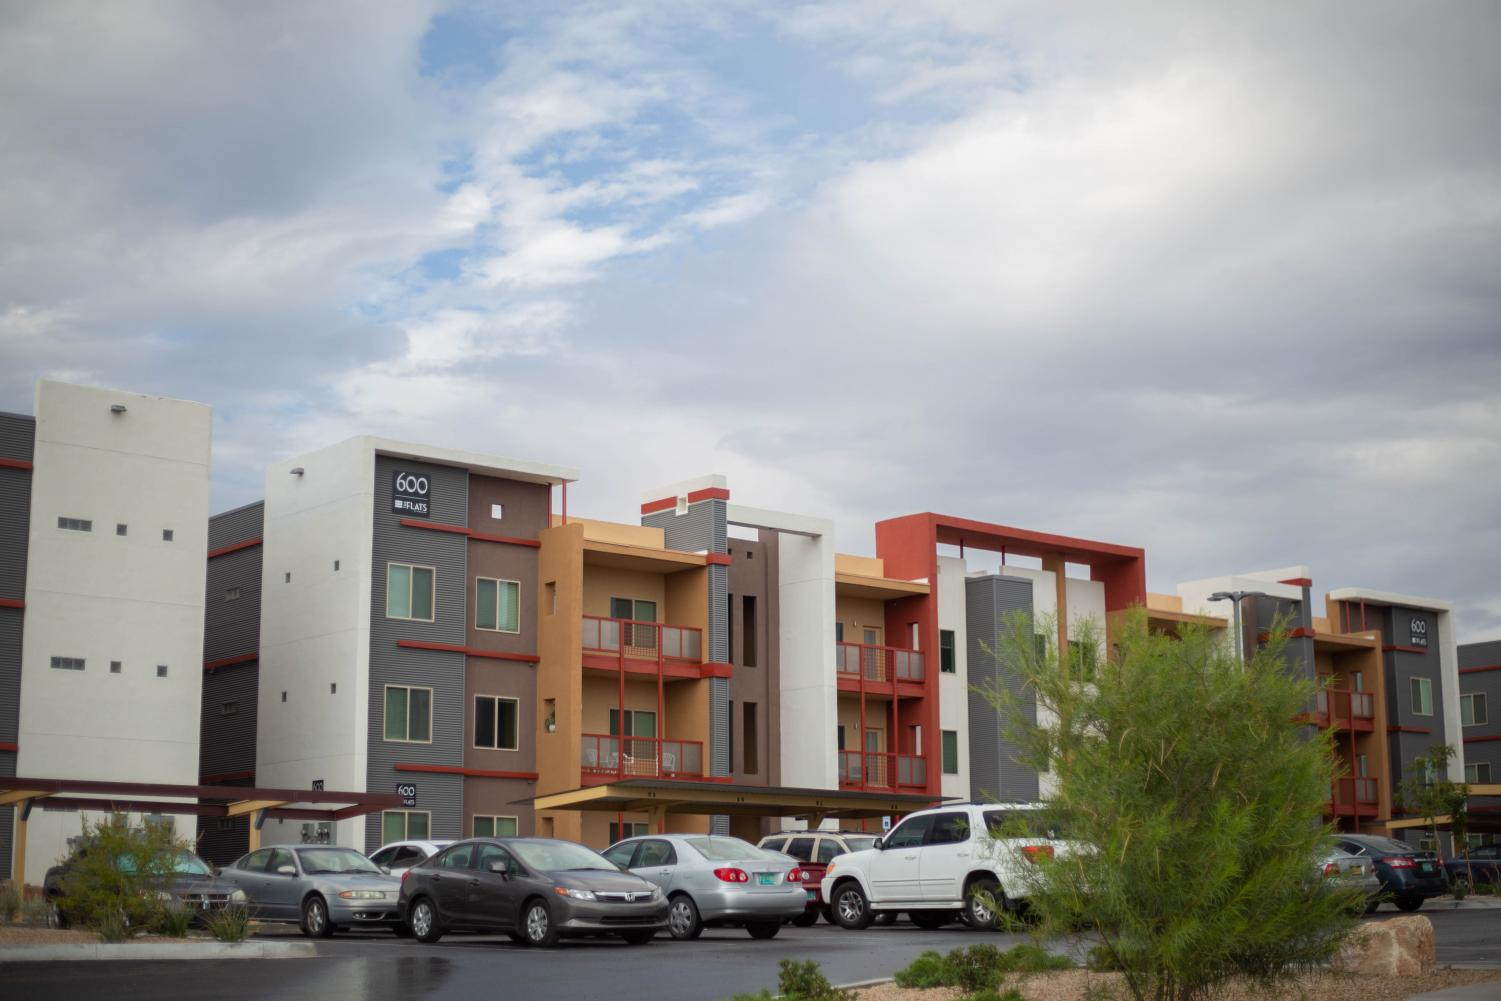 A new modern apartment complex located conveniently across from NMSU is attracting students to off-campus housing.